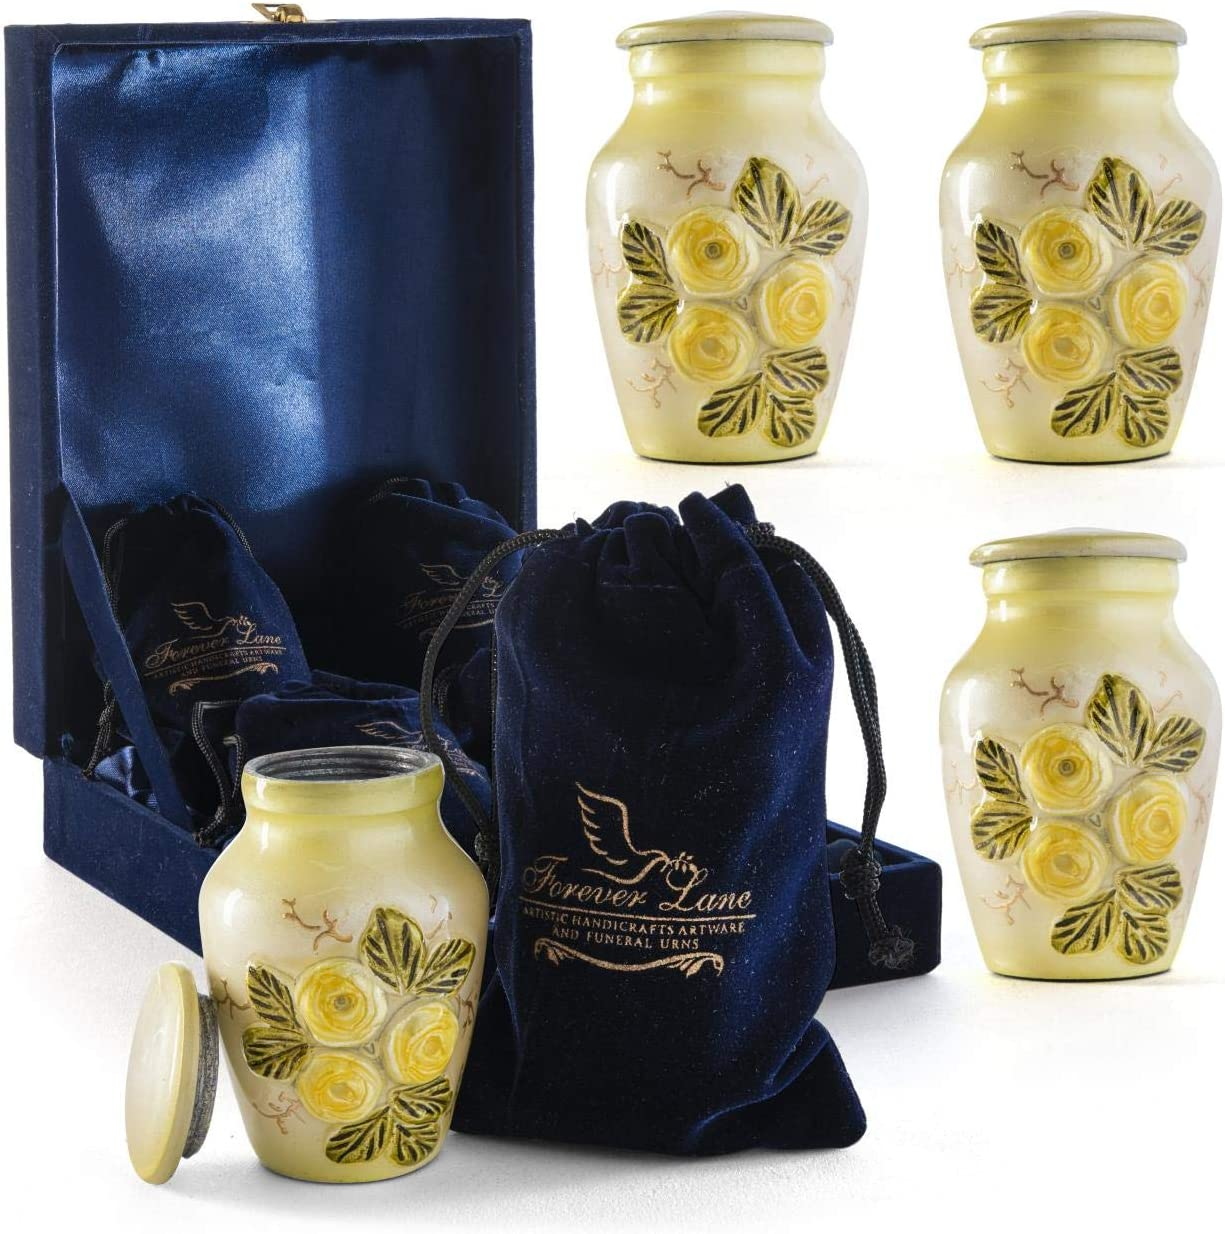 Foreverlane Beautiful Small Keepsake Urn for Human Ashes Yellow Rose Flower, Unique Handmade Mini Keepsake urn with Case and 4 Individual Velvet Bags